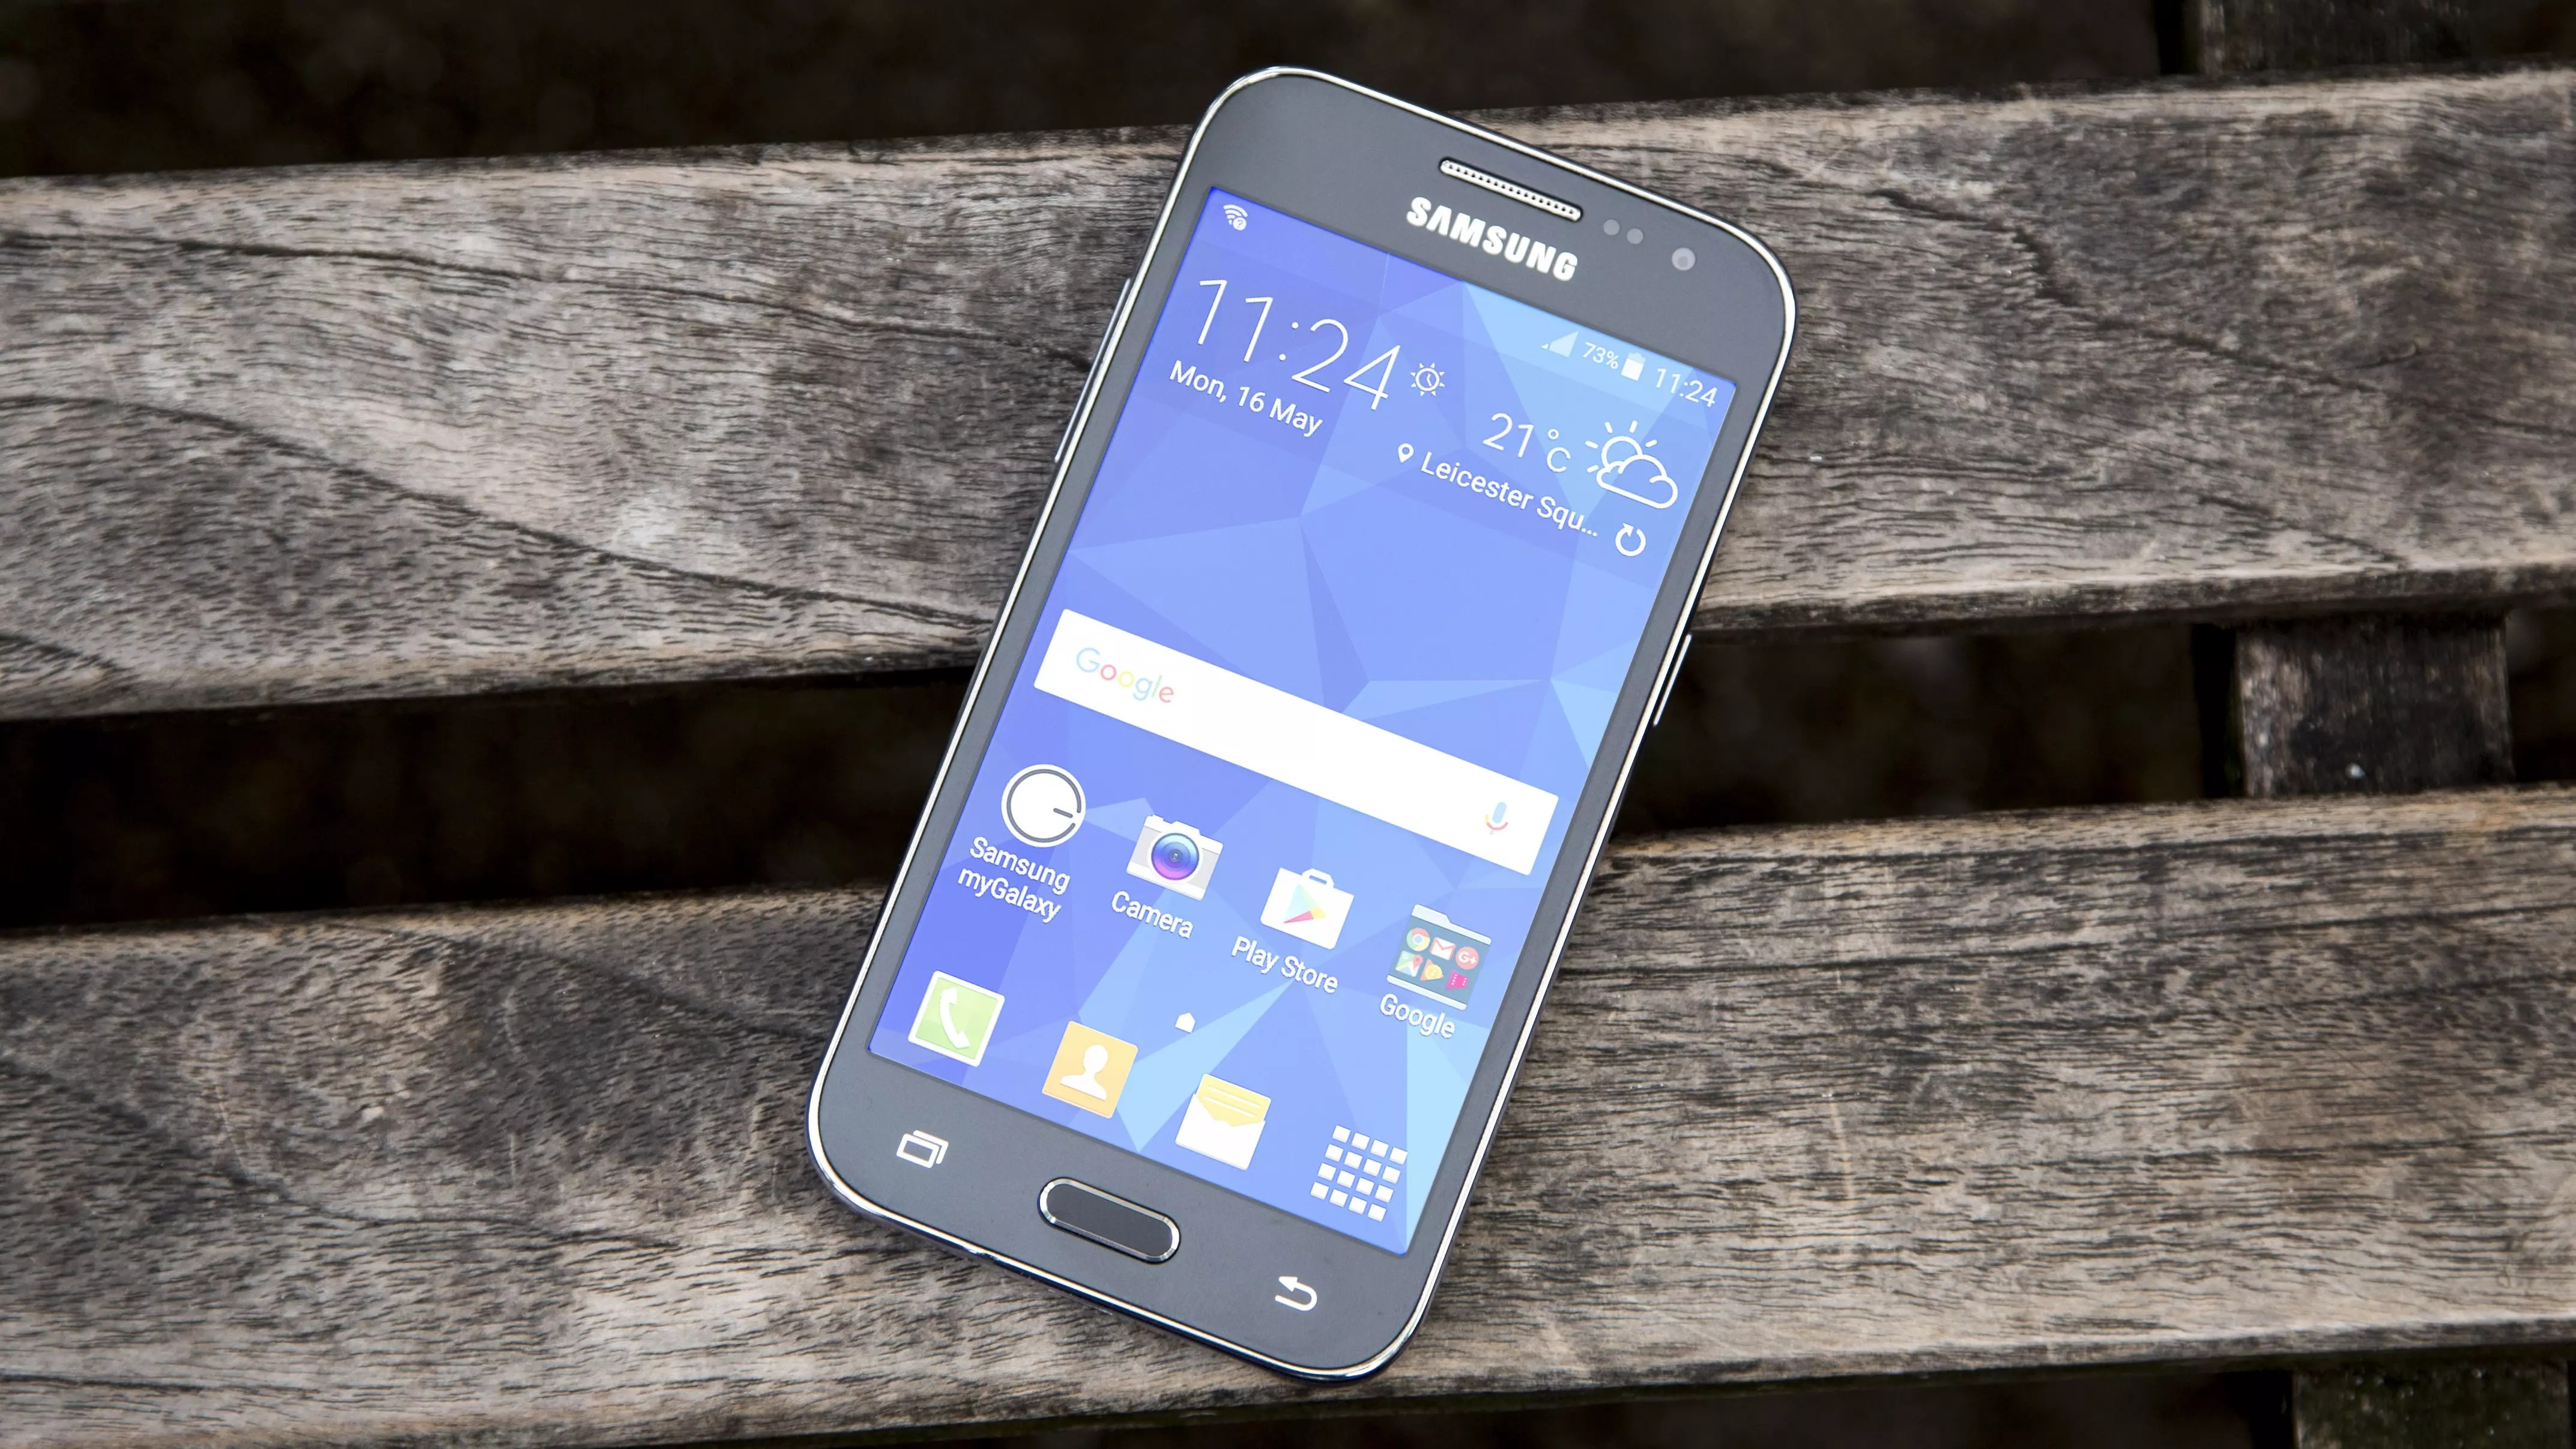 Samsung Galaxy Core Prime Samsung Galaxy Core Prime Performance And Long Term Review